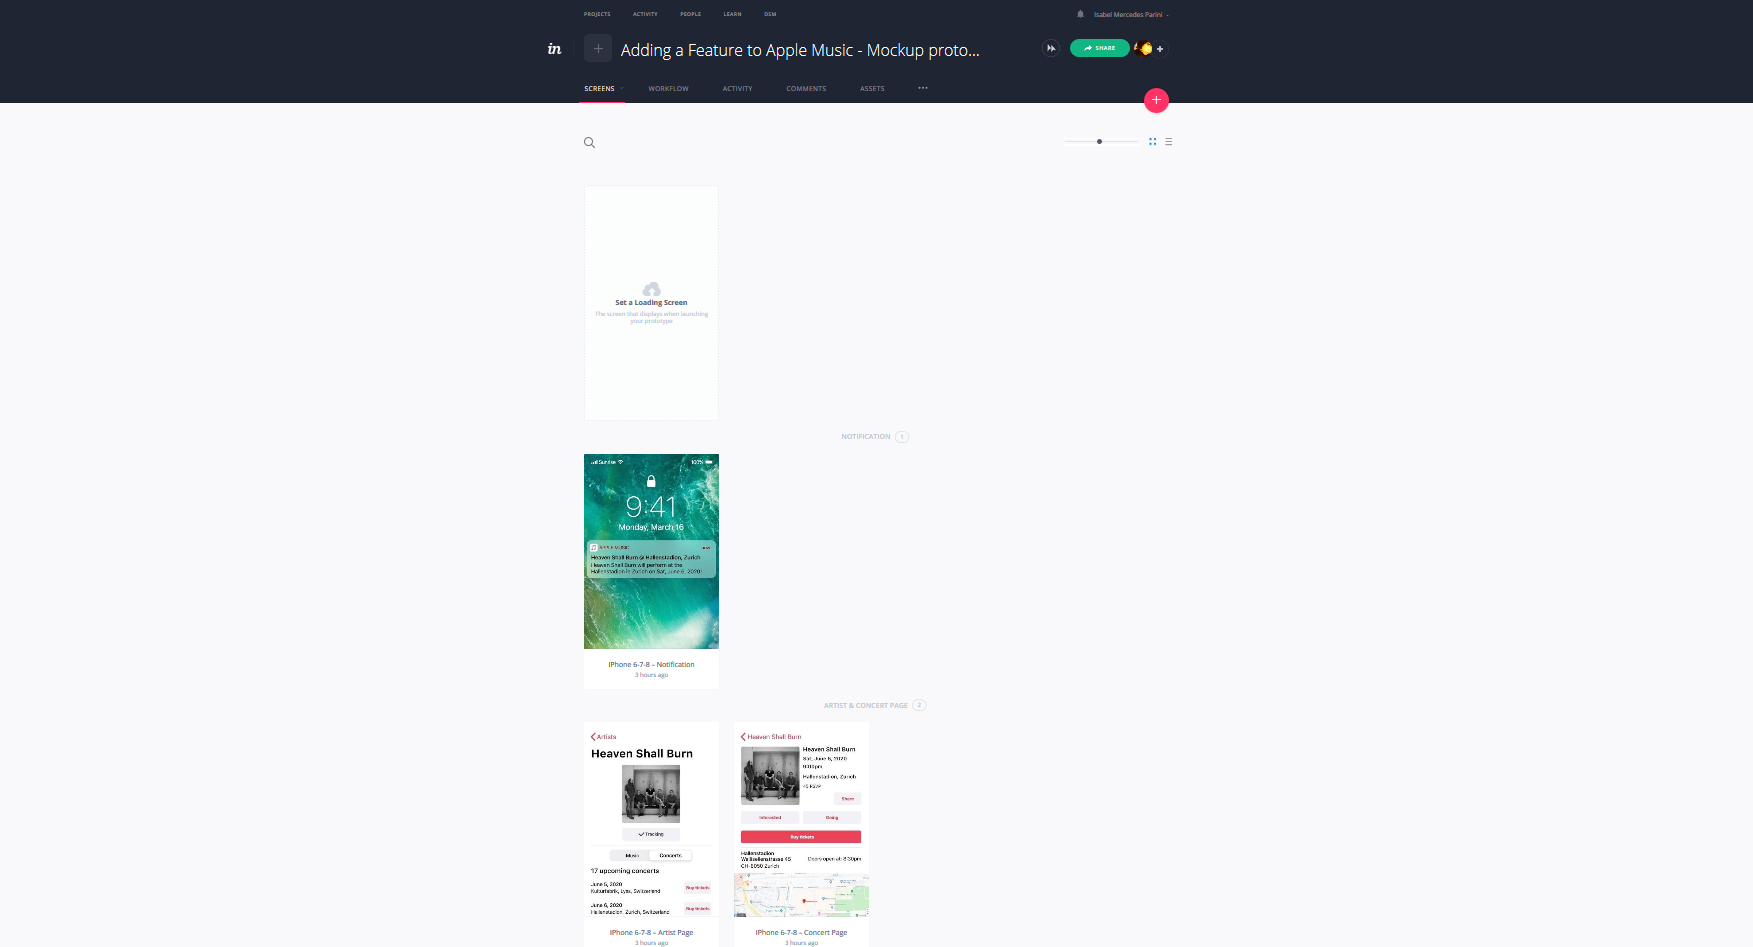 Adding-a-Feature-to-Apple-Music-Mockup-prototype-Screens-InVision